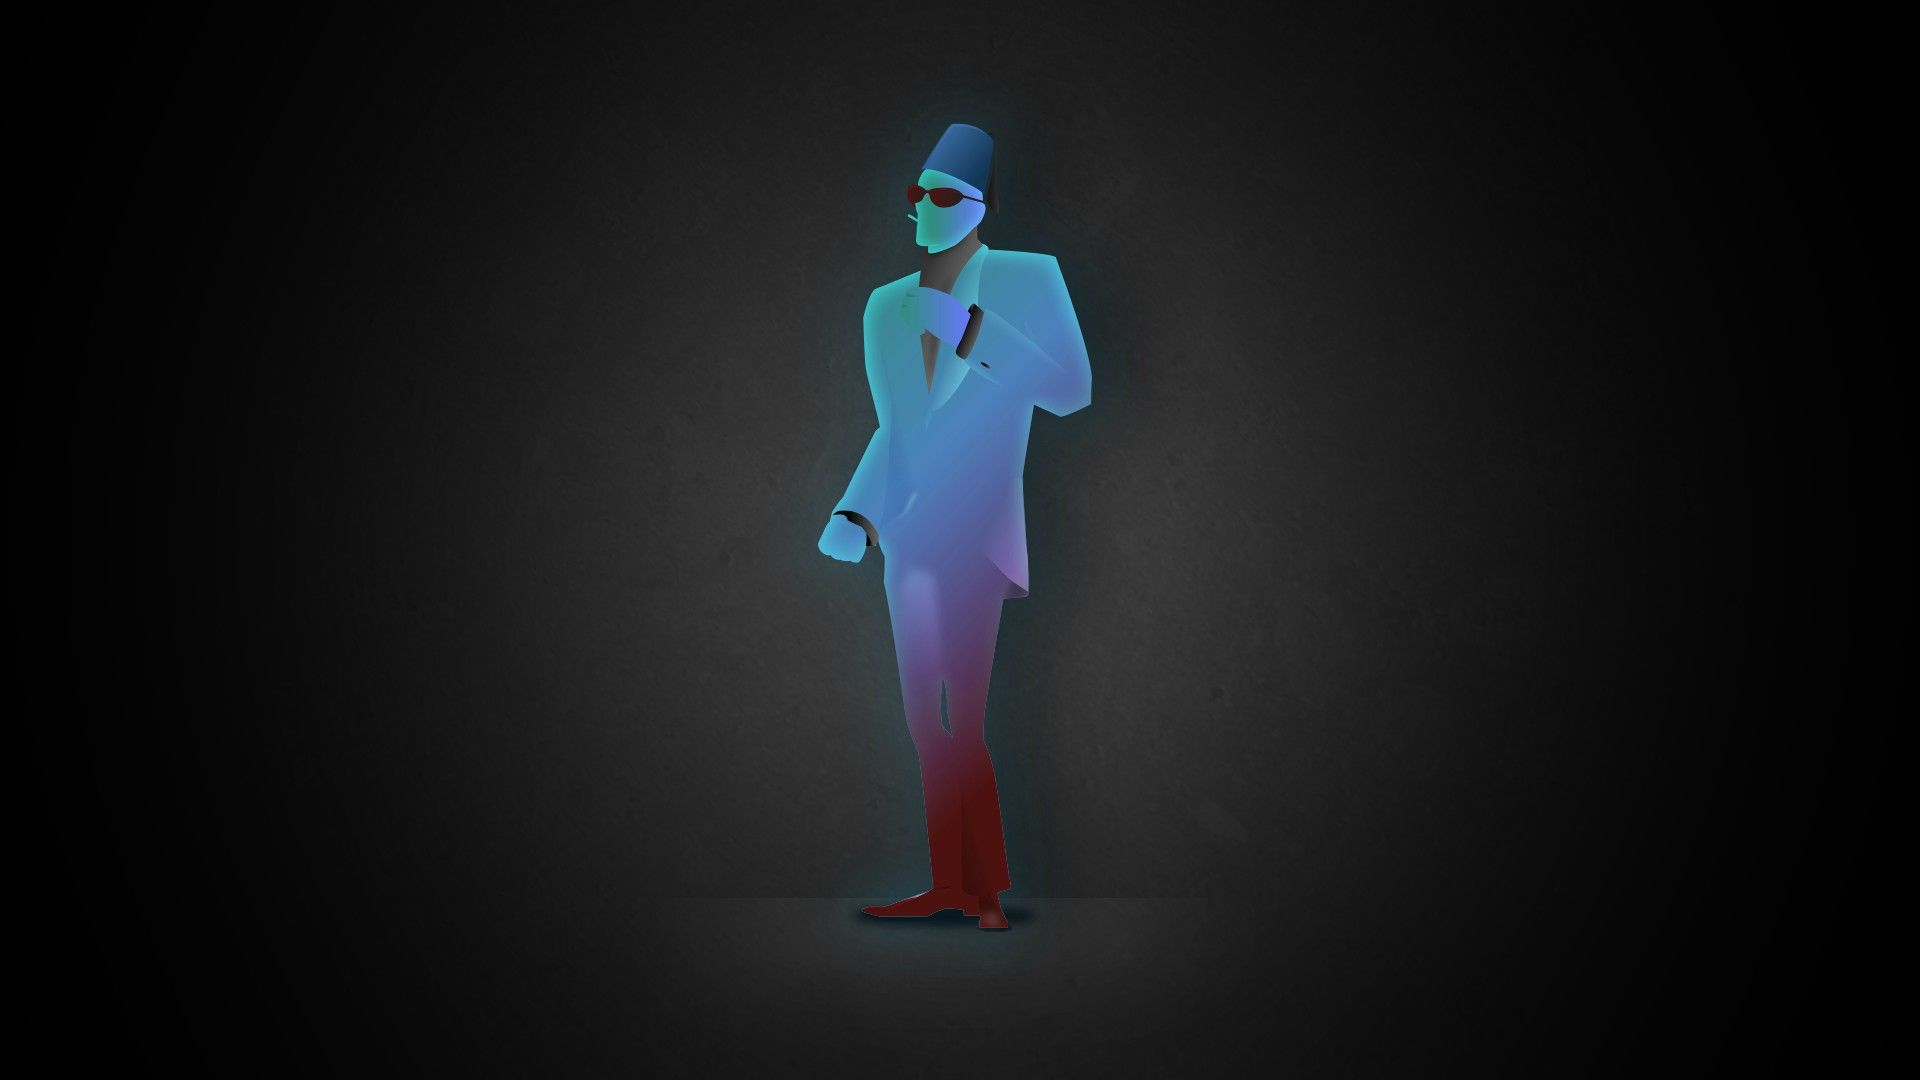 Team Fortress SPY Images Gentlemen Wallpaper And Background